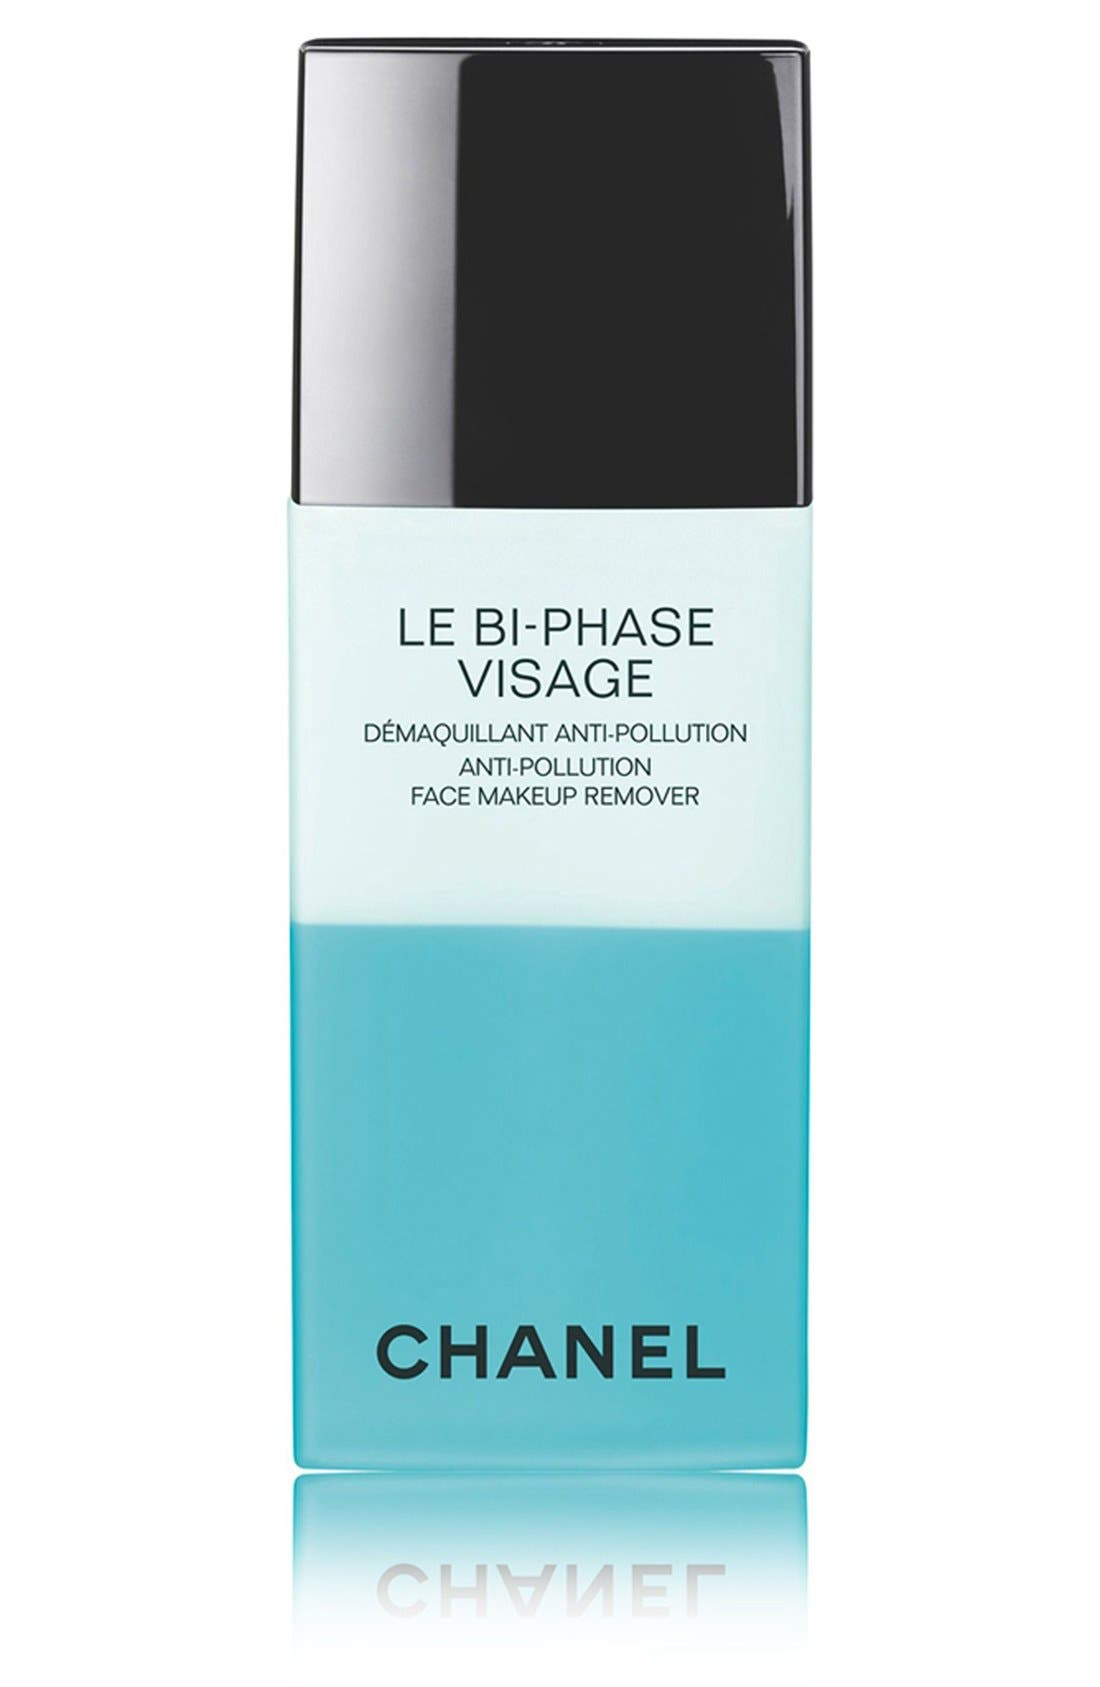 CHANEL LE BI-PHASE VISAGE 